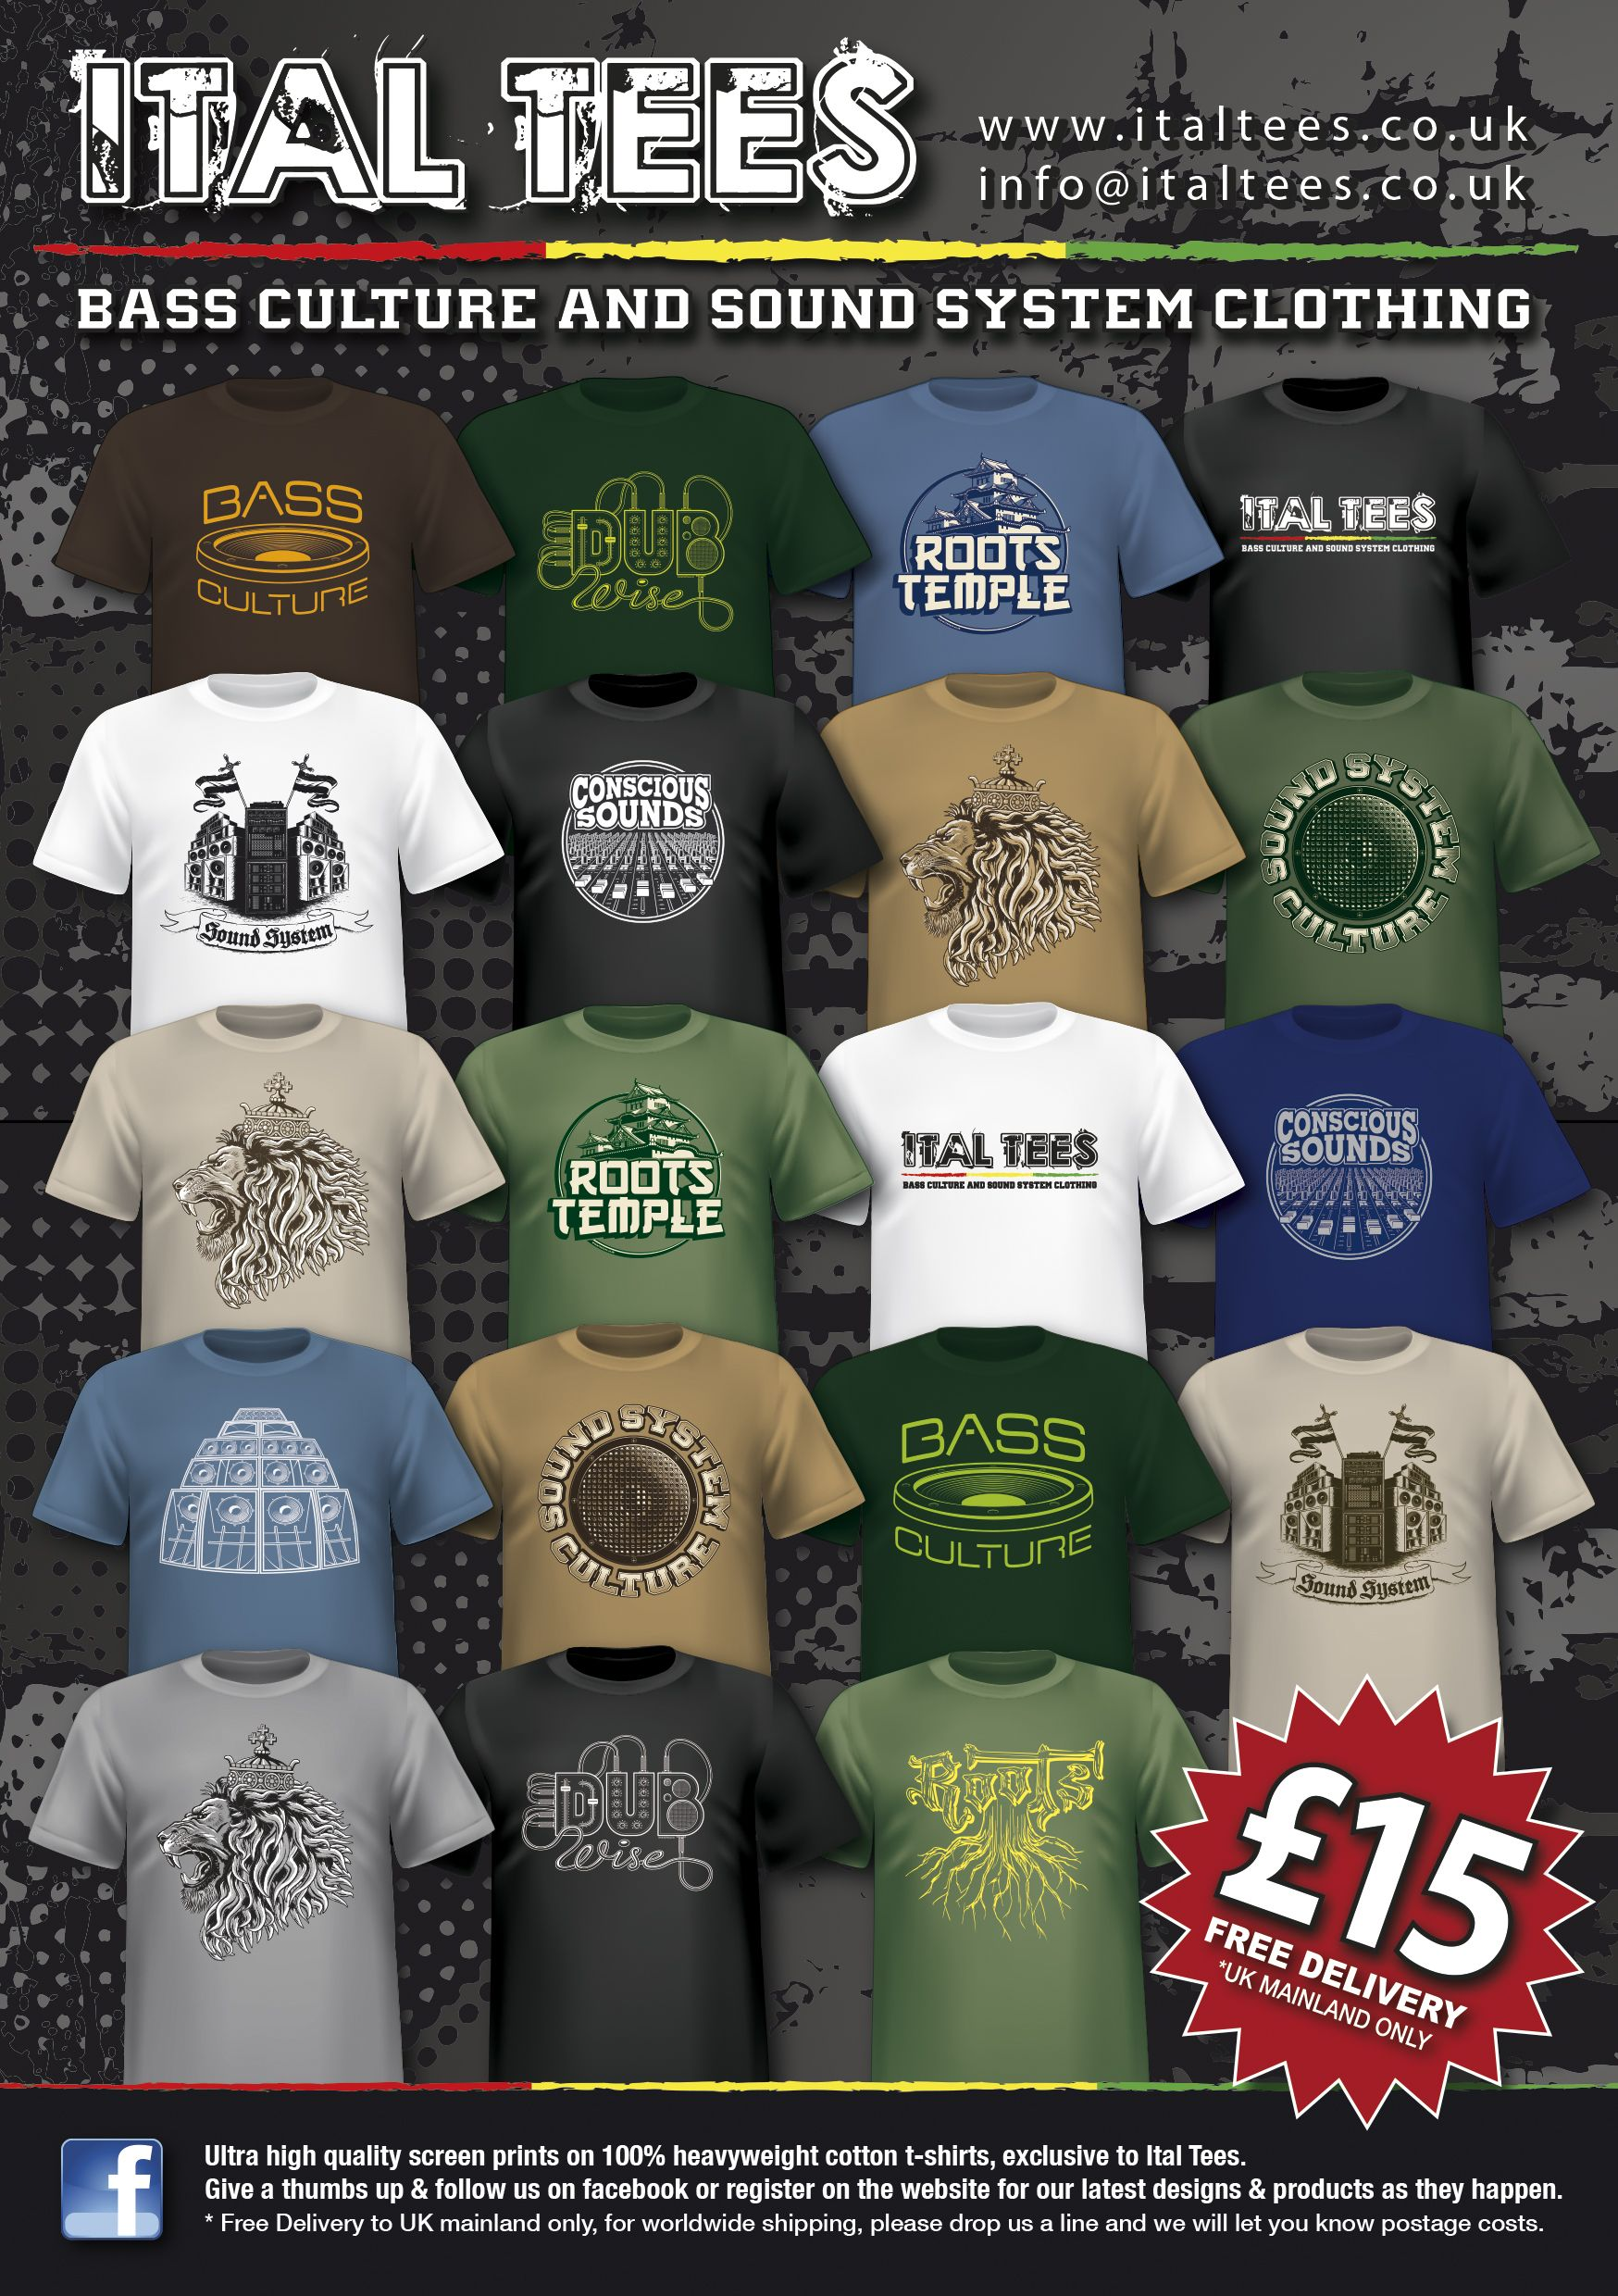 Ital tees bass culture and sound system clothing - 1000 Images About Sound System Culture Tshirts On Pinterest Tees And Design